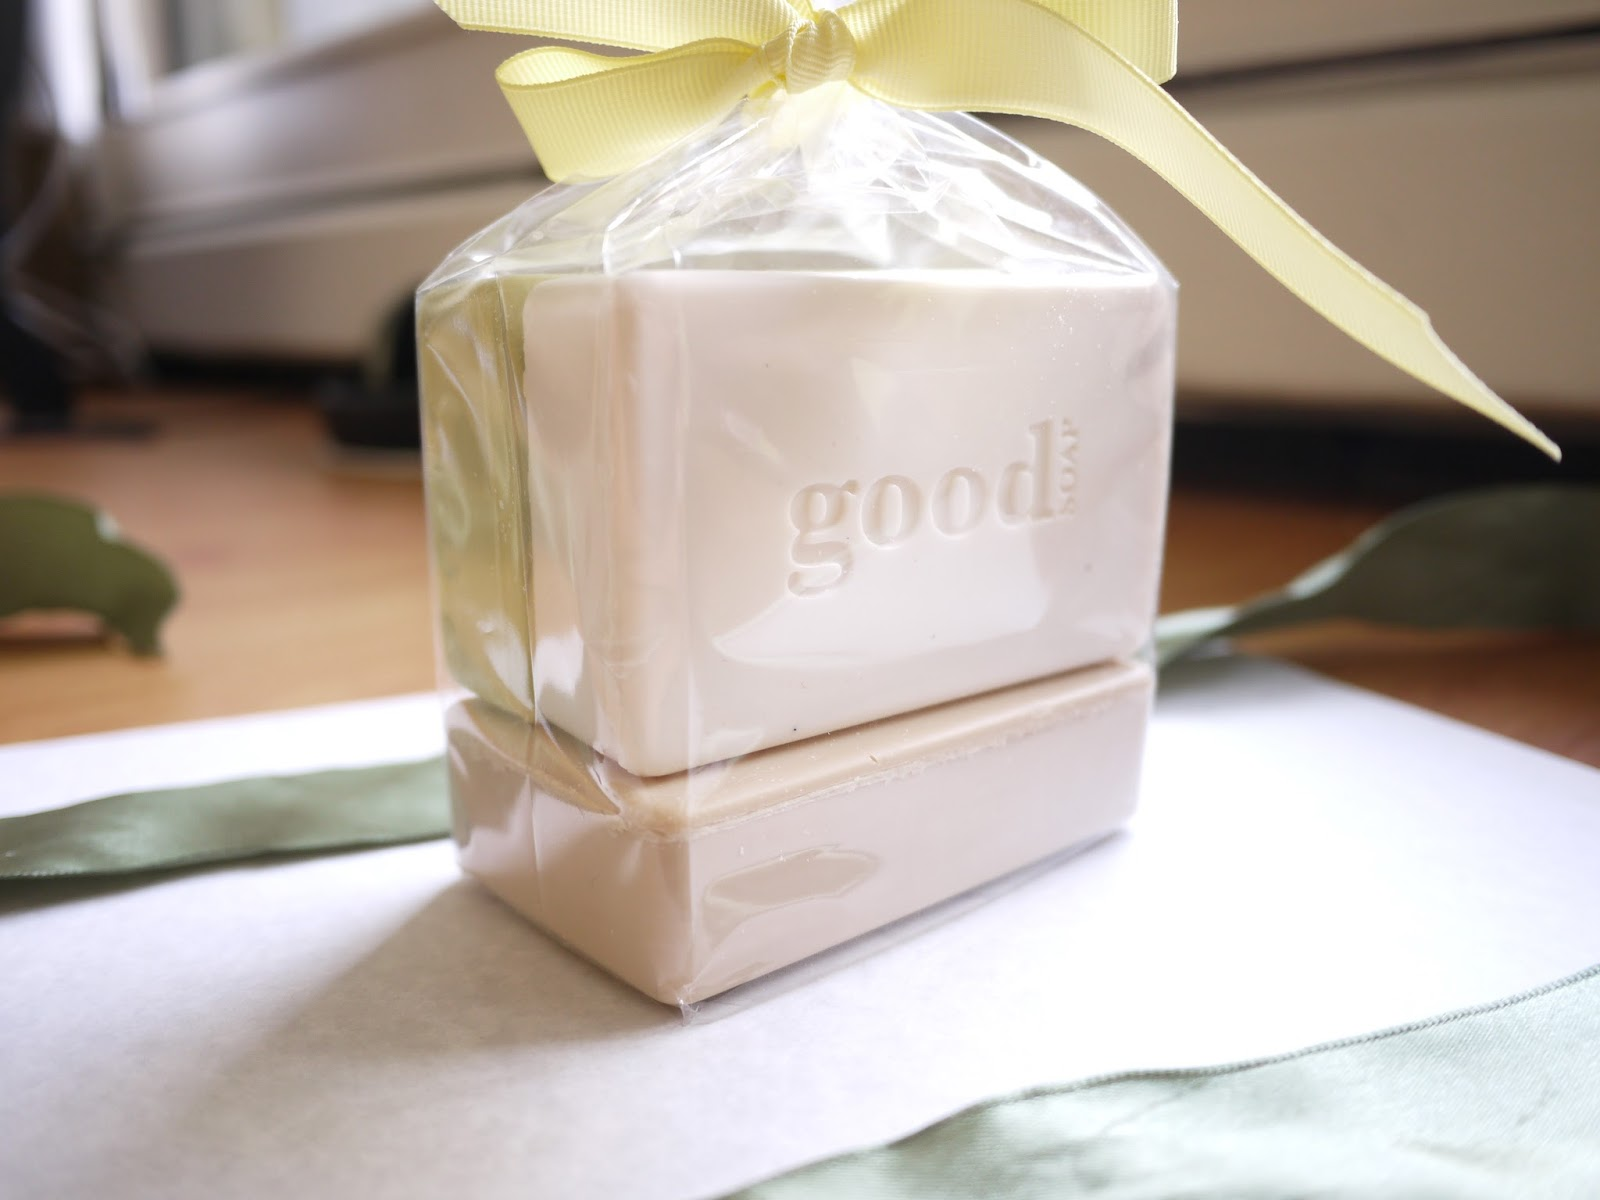 Good Soap Whole Foods Coconut